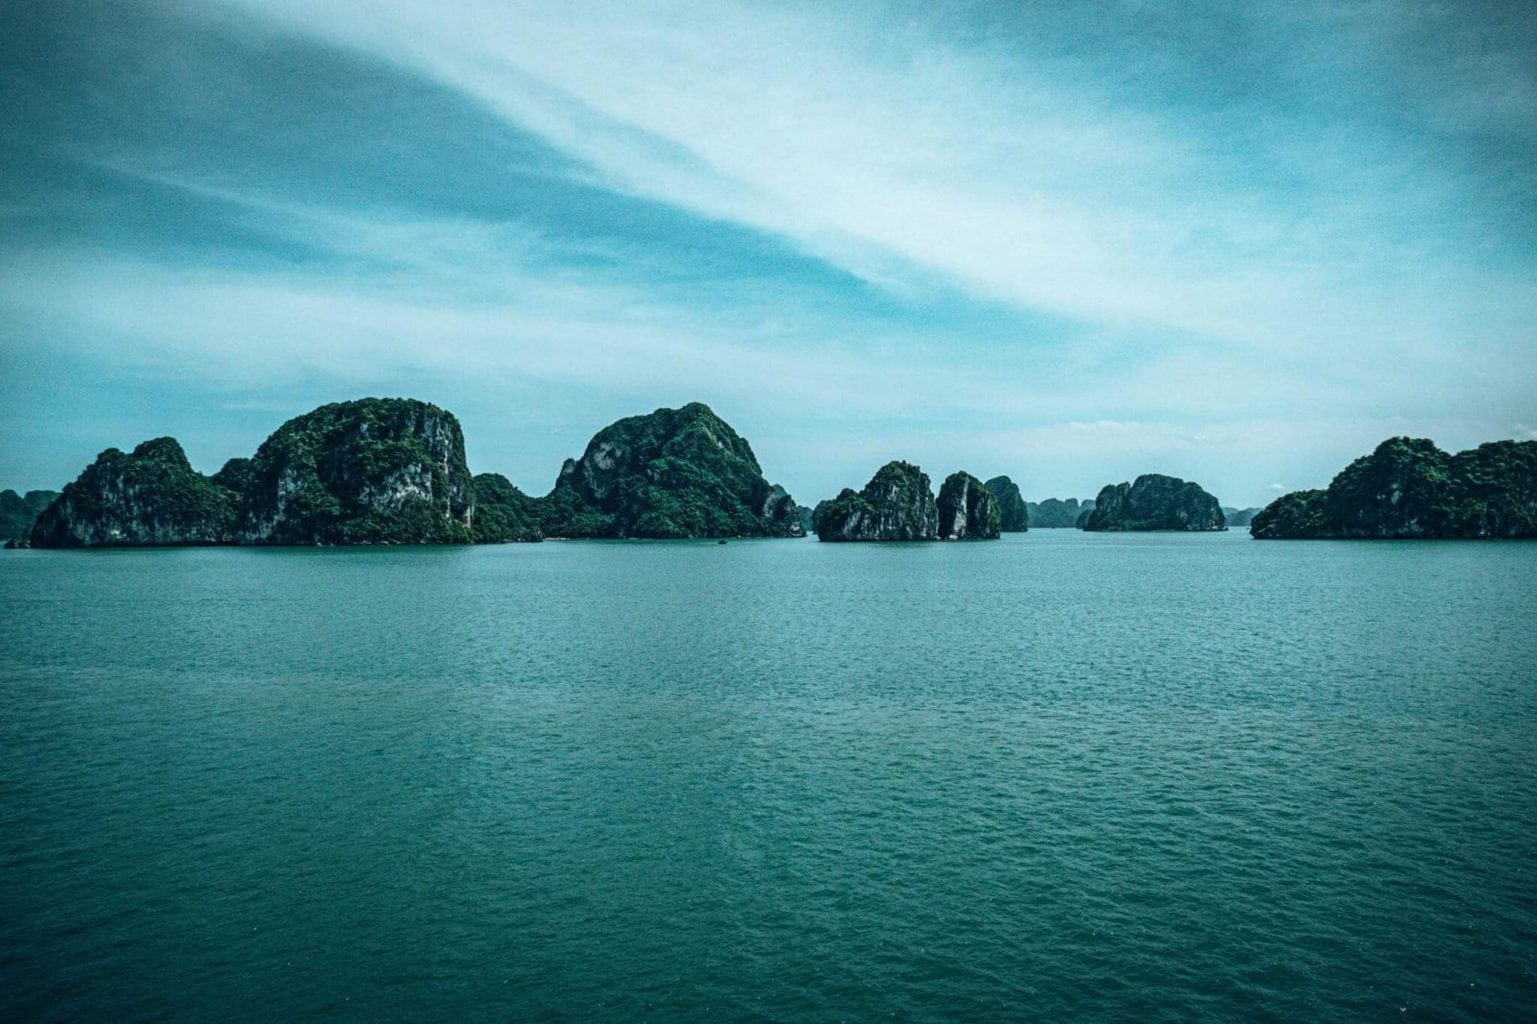 Bai Tu Long Bay Tour scenery